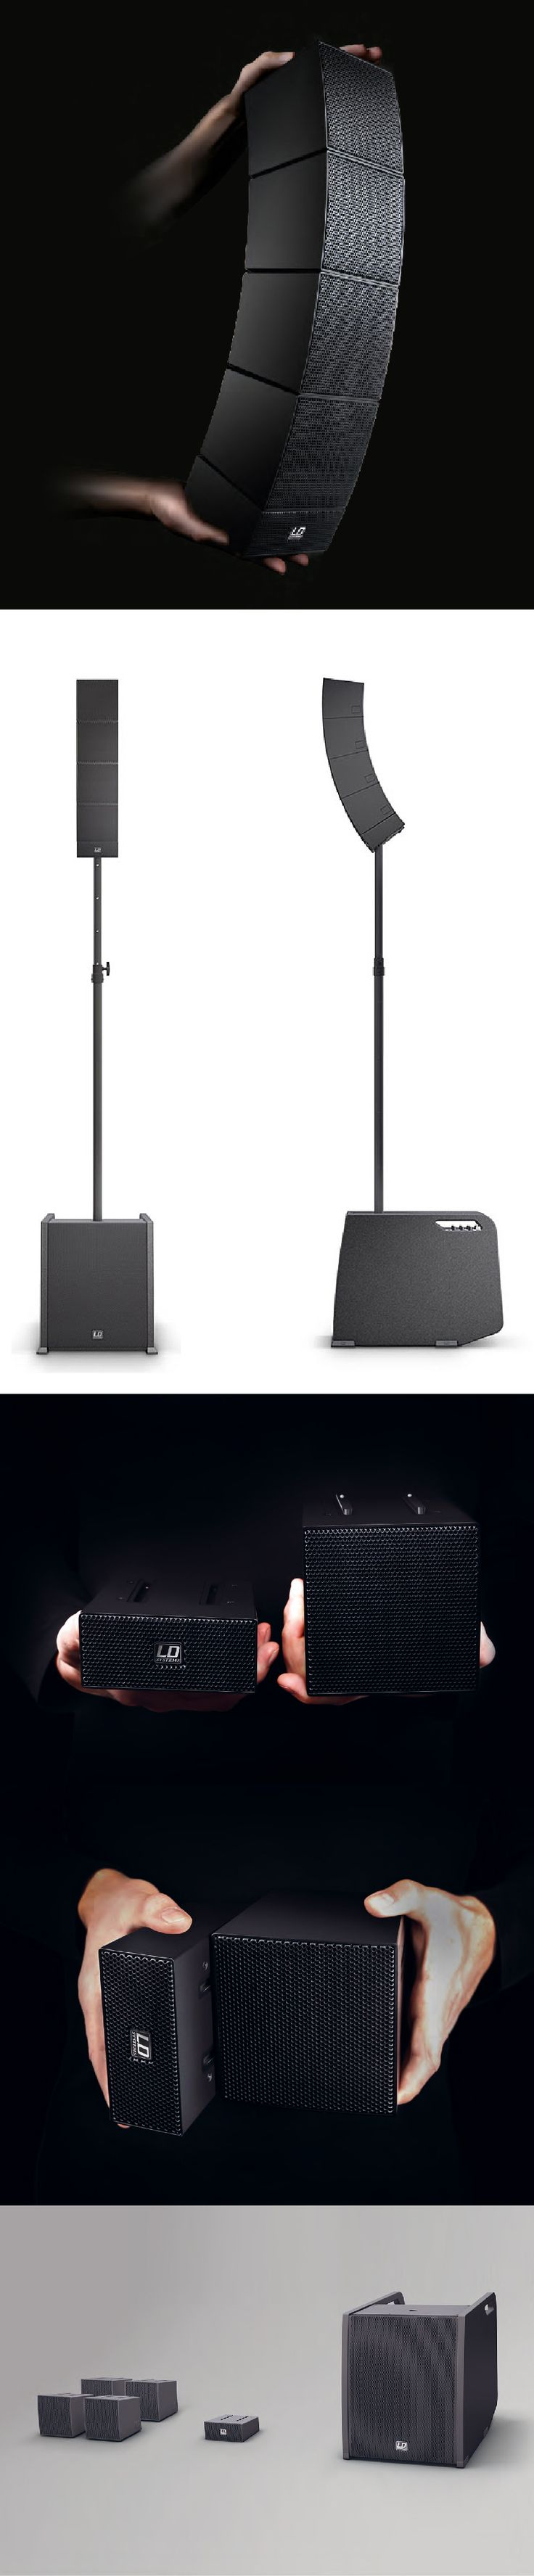 The portable sound system CURV500 designed by Spacekitchen Frankfurt is a compact line array with professional configuration options for many-sided applications.  The portable loudspeaker kit, with an integrated mixer, stands out due to a wireless plug-and-play coupling device of the array satellites. The design of the light subwoover is convincing with ergonomic carrying comfort and a design language, which communicates lightweight and usability.